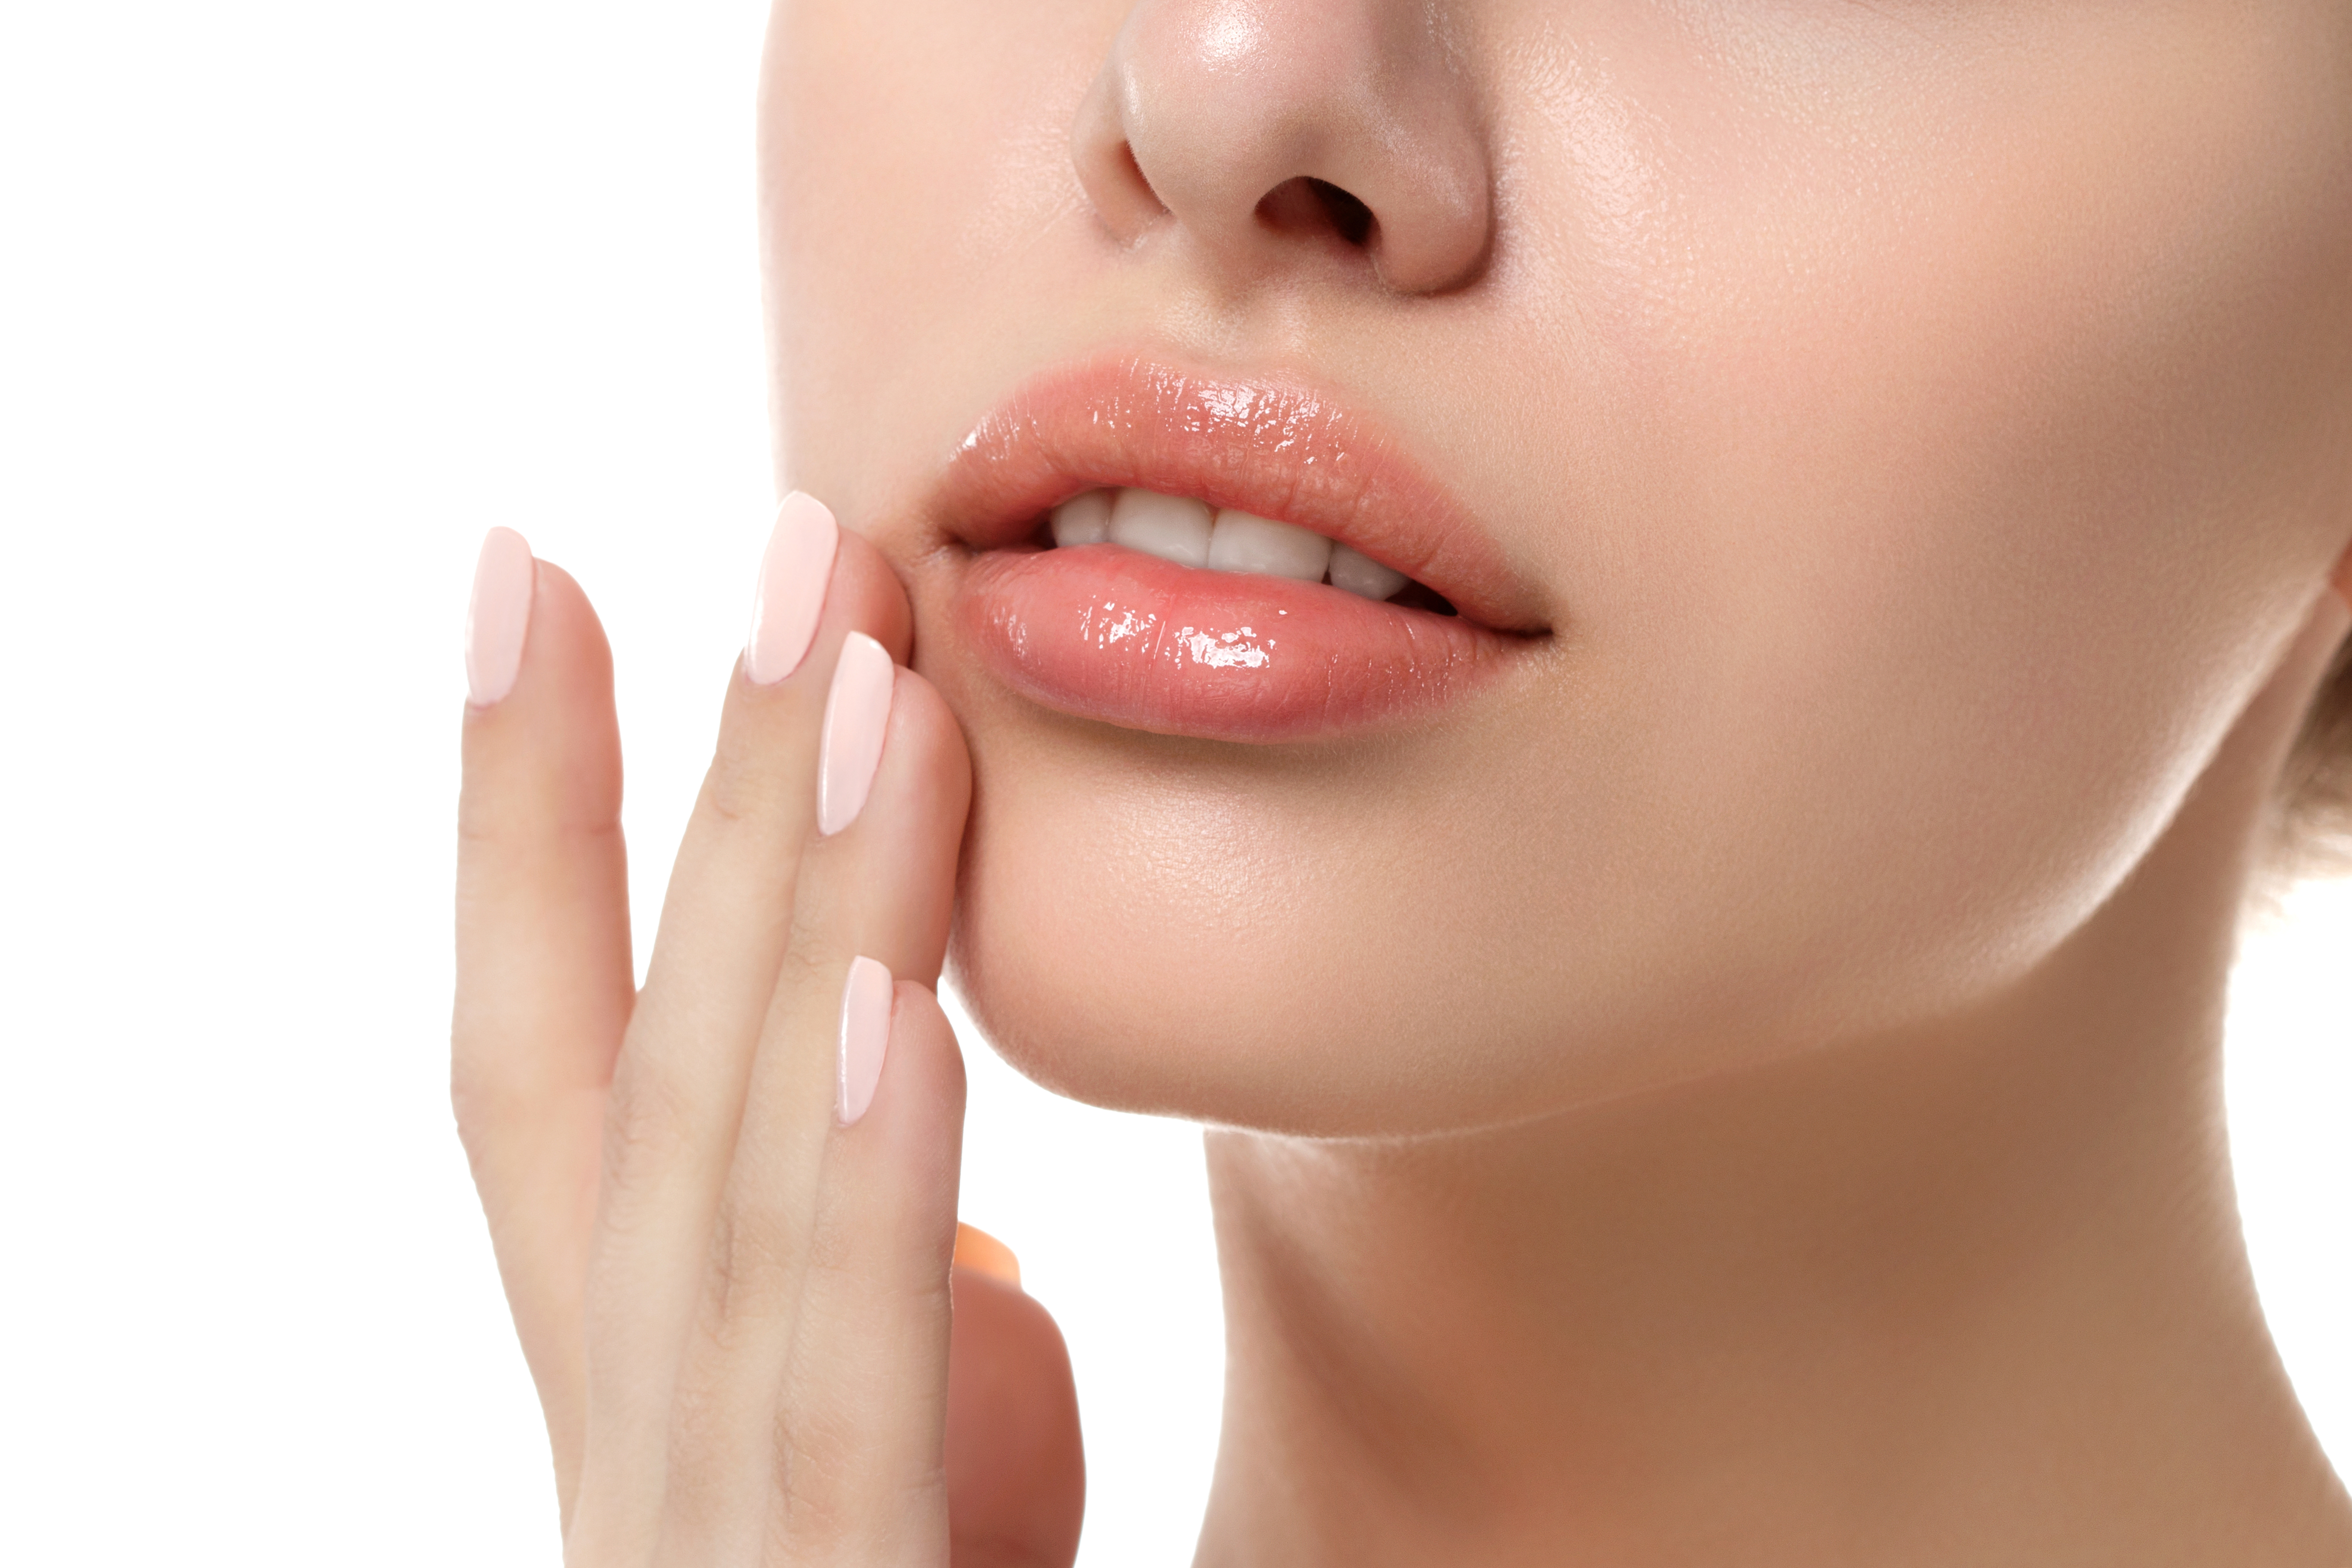 Woman exfoliating her lips.